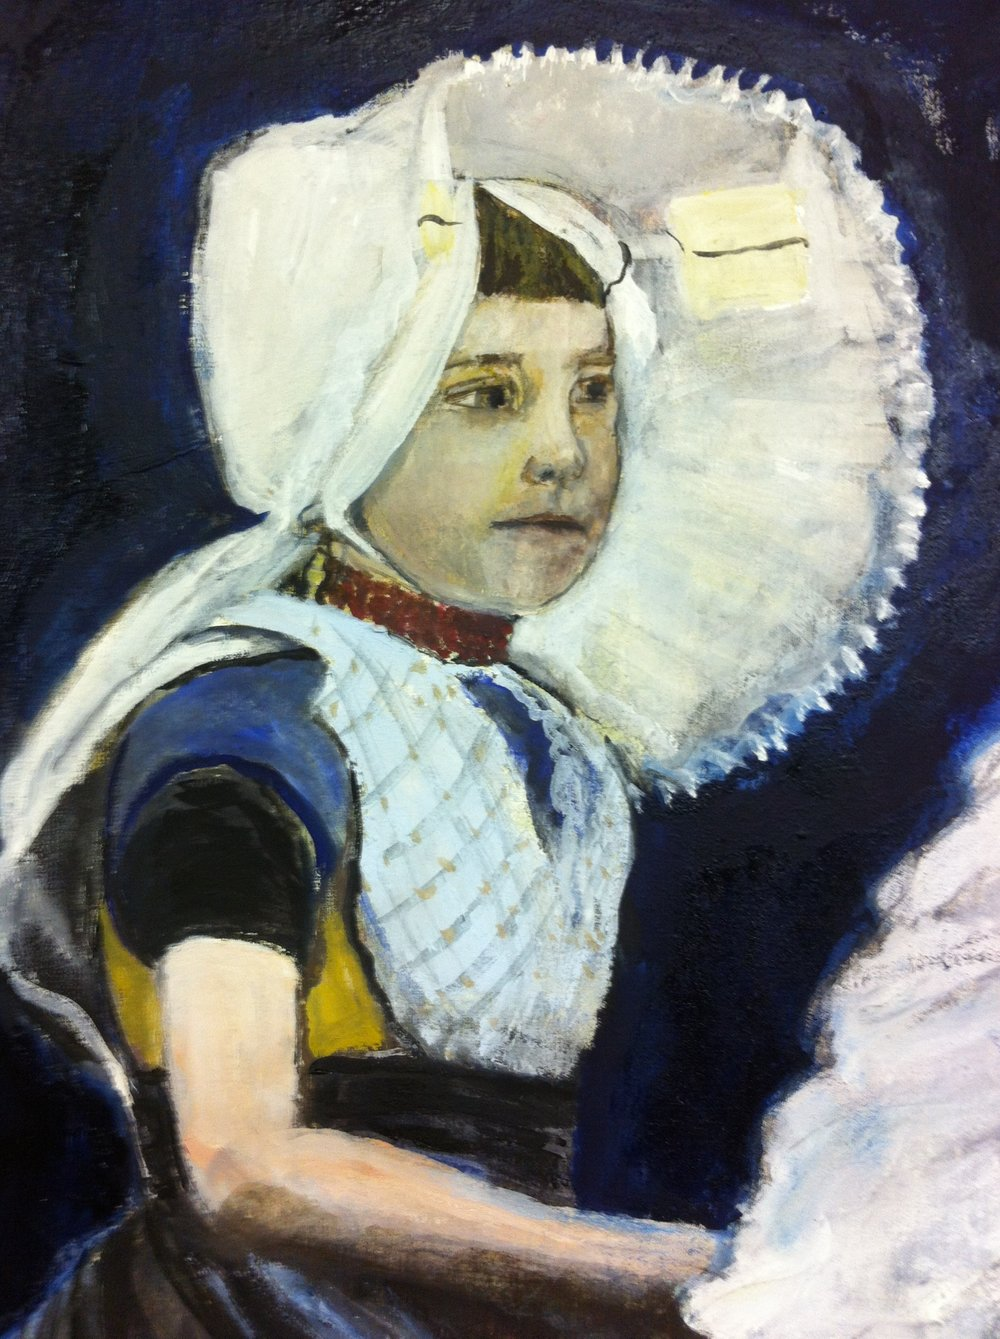 Dutch girl - Oil on canvas